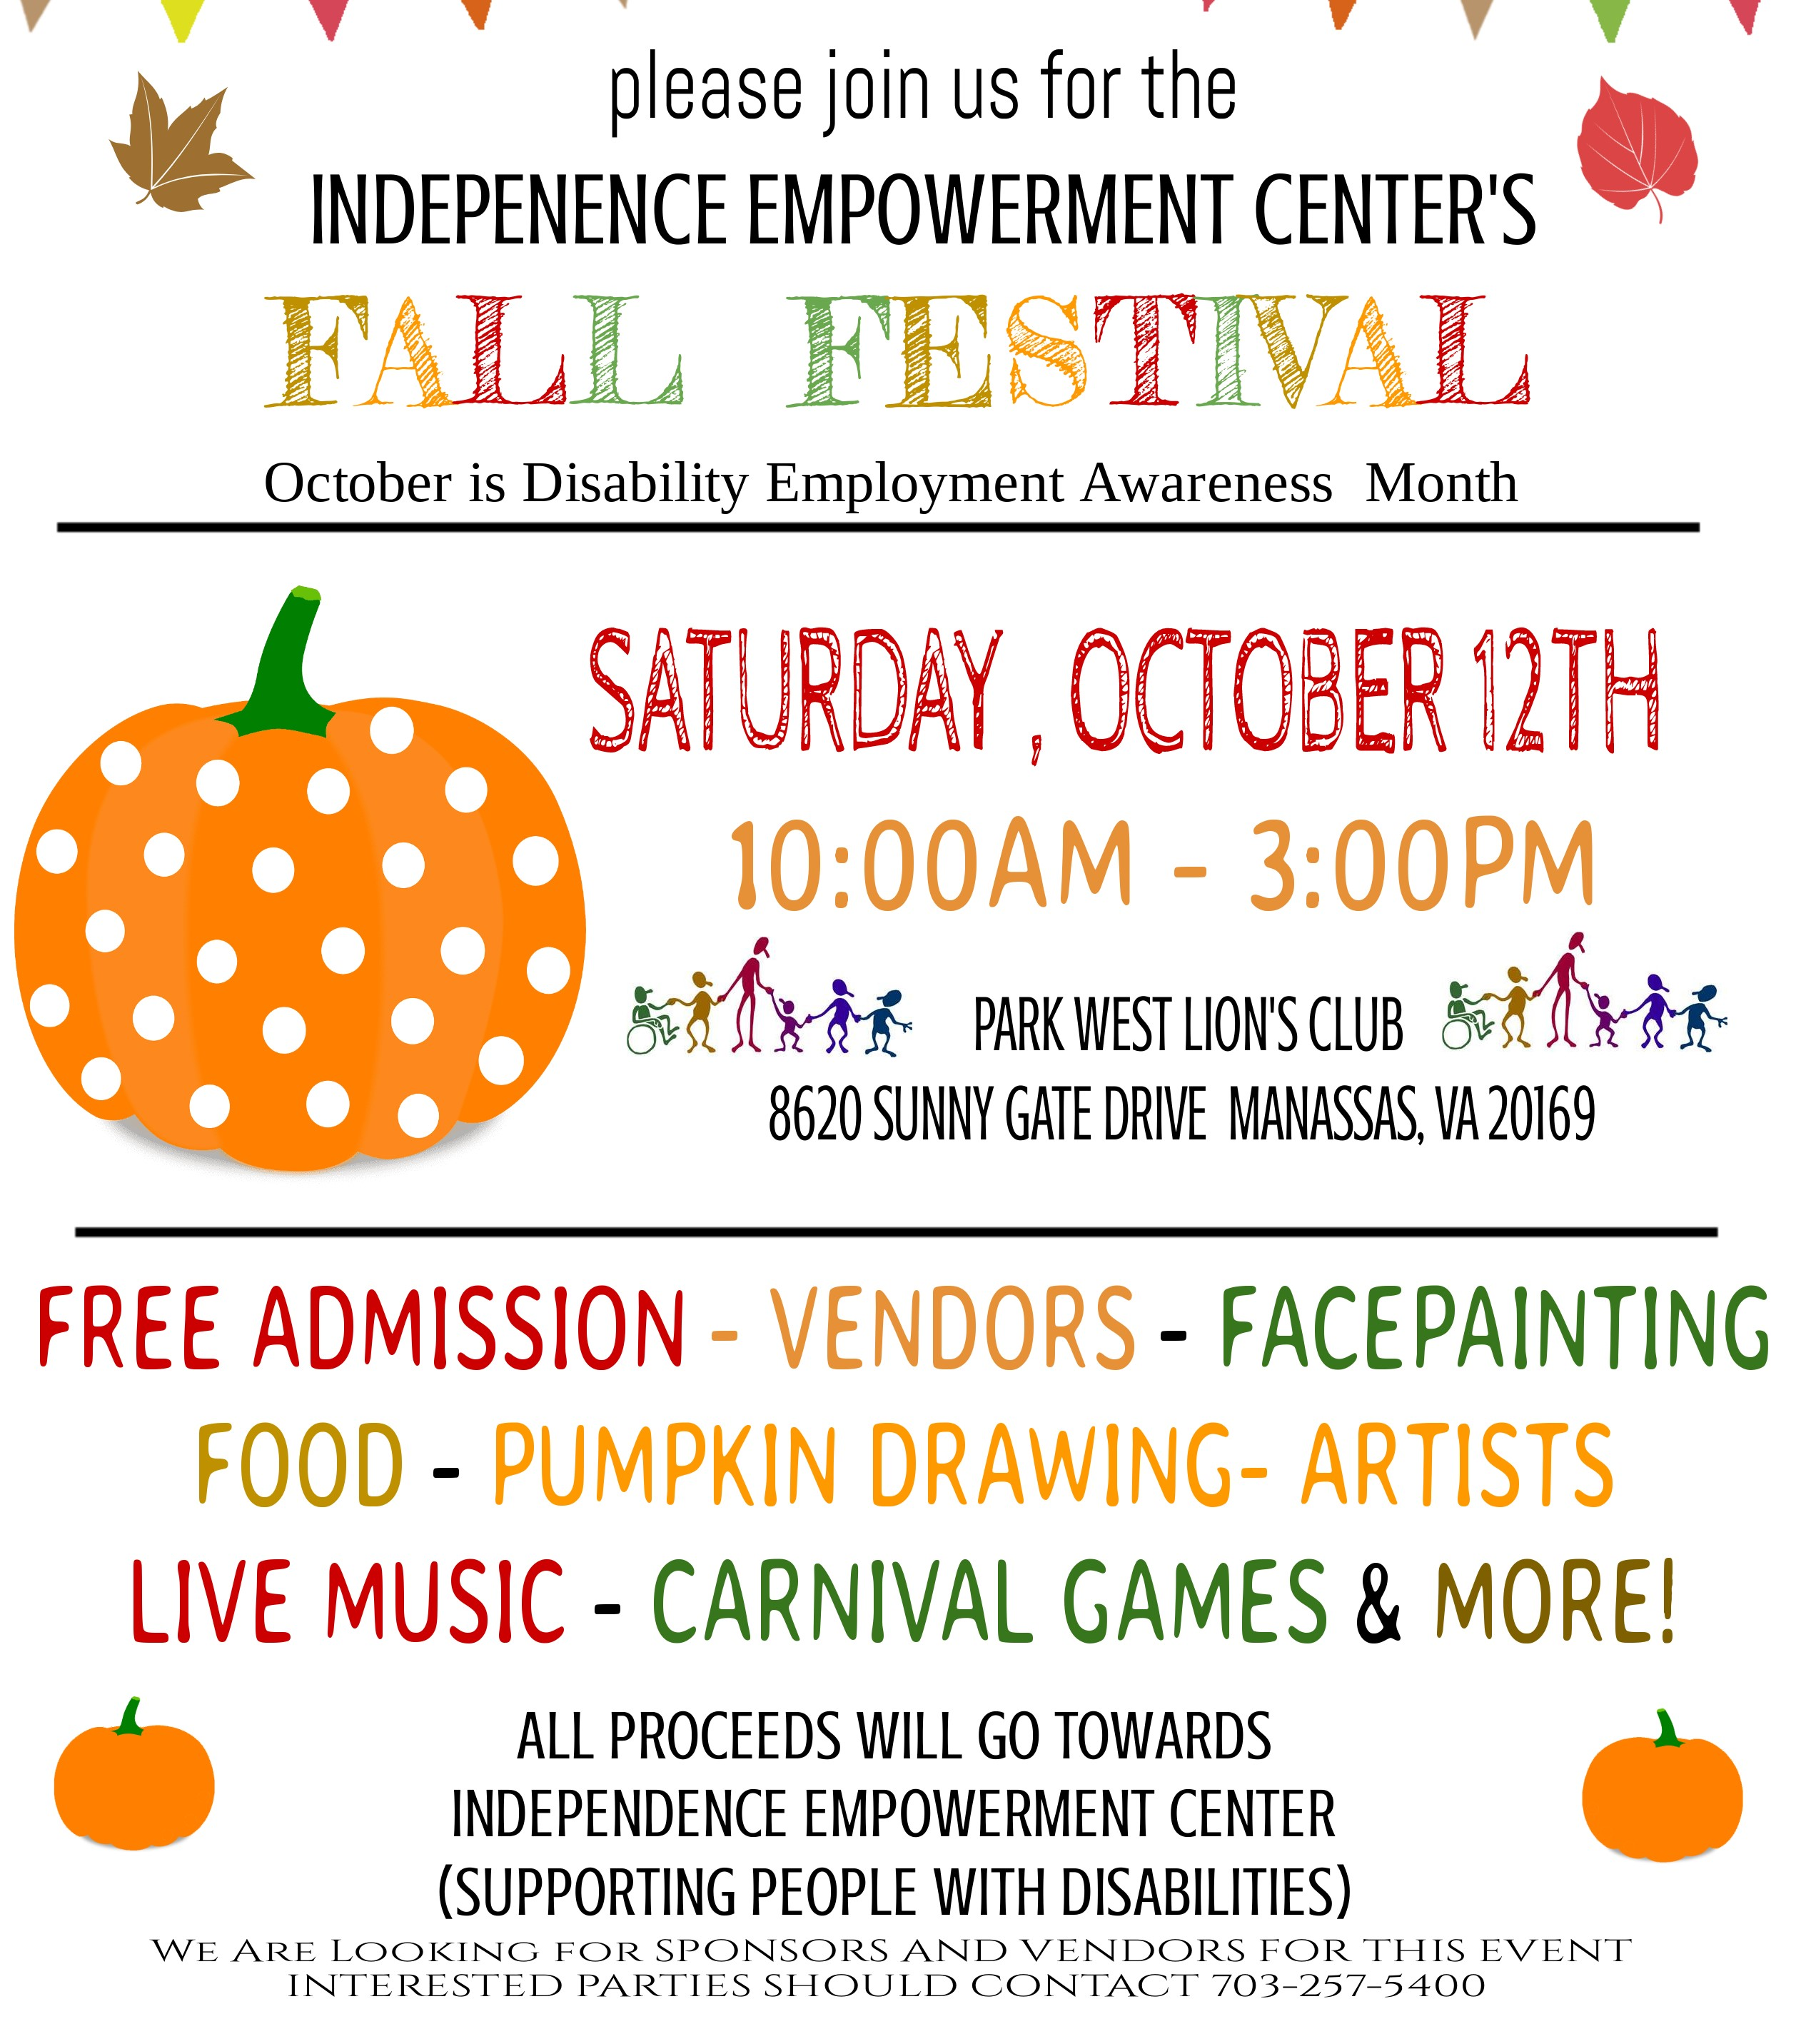 Independence Empowerment Center Fall Festival